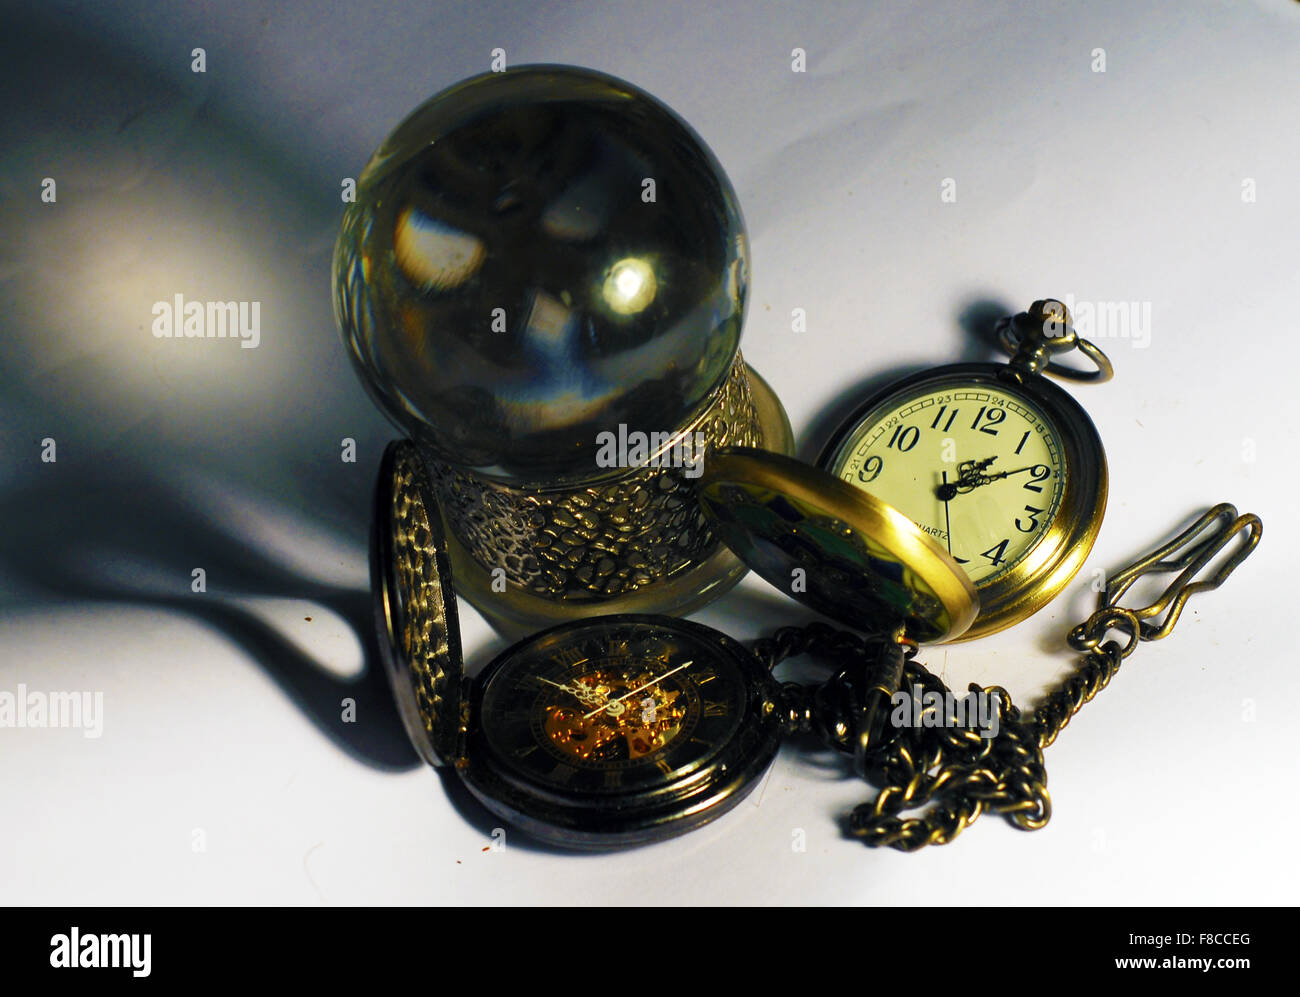 crystal ball,fobwatches,time,fortune telling,chain - Stock Image